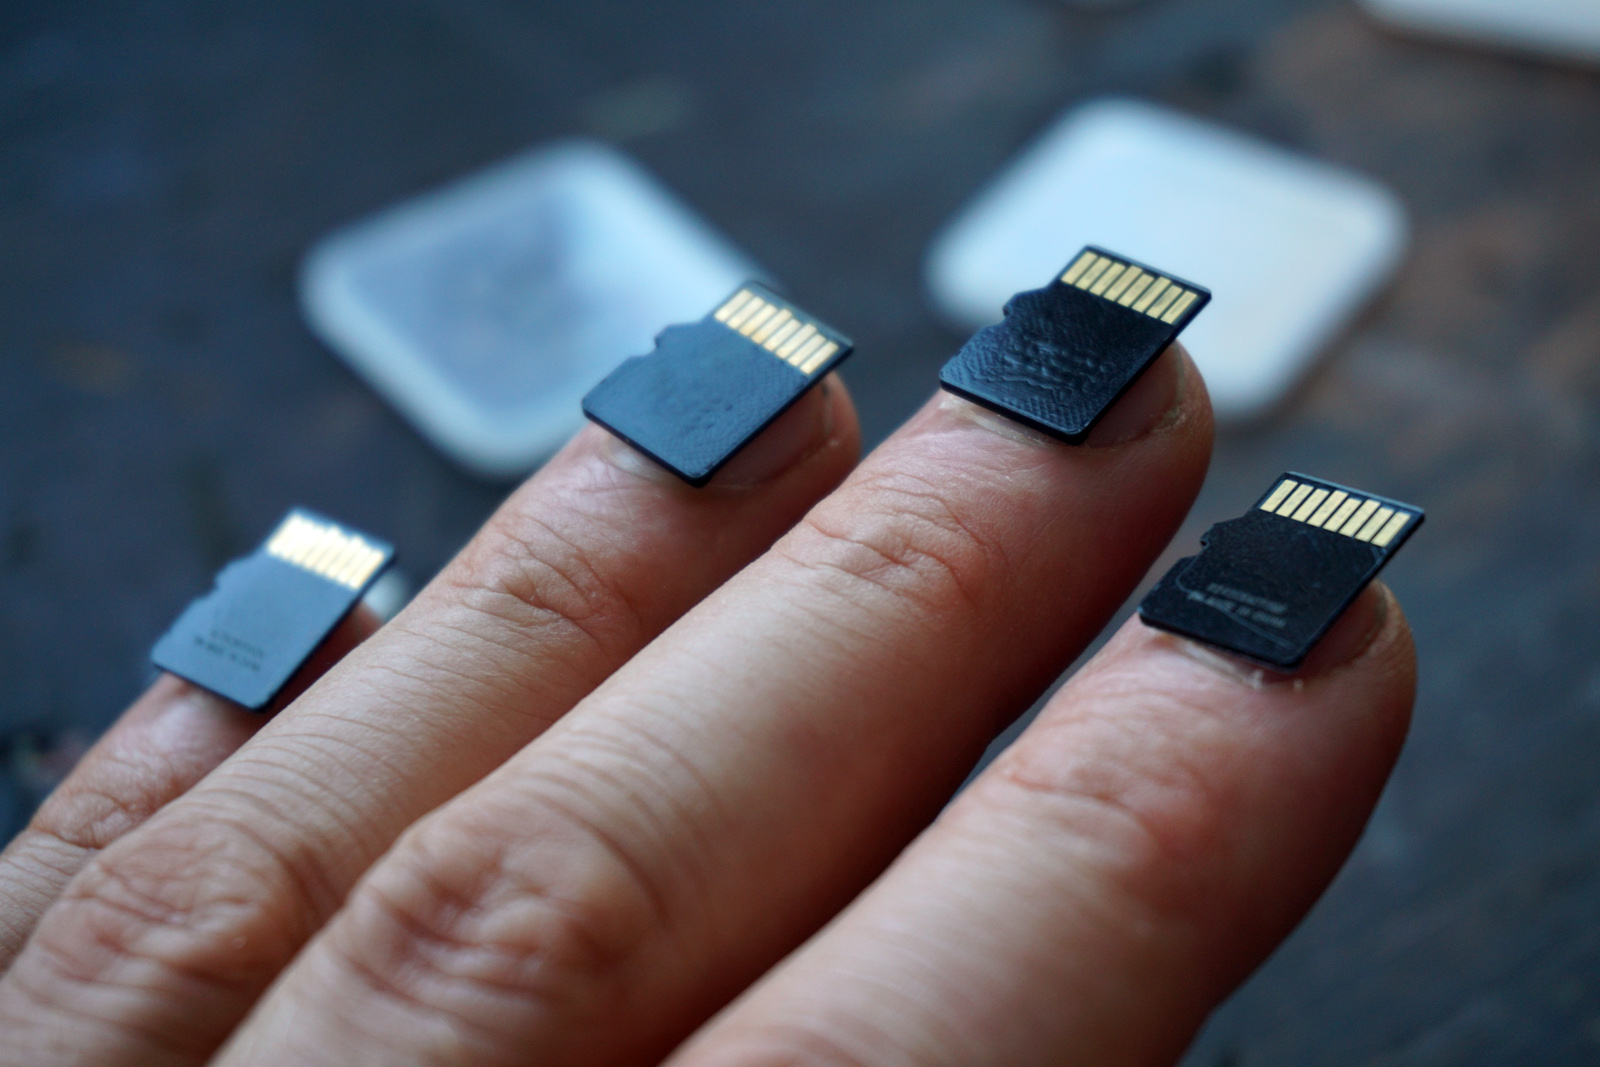 The USB Manicure Puts Data at Your Fingertips - Creators